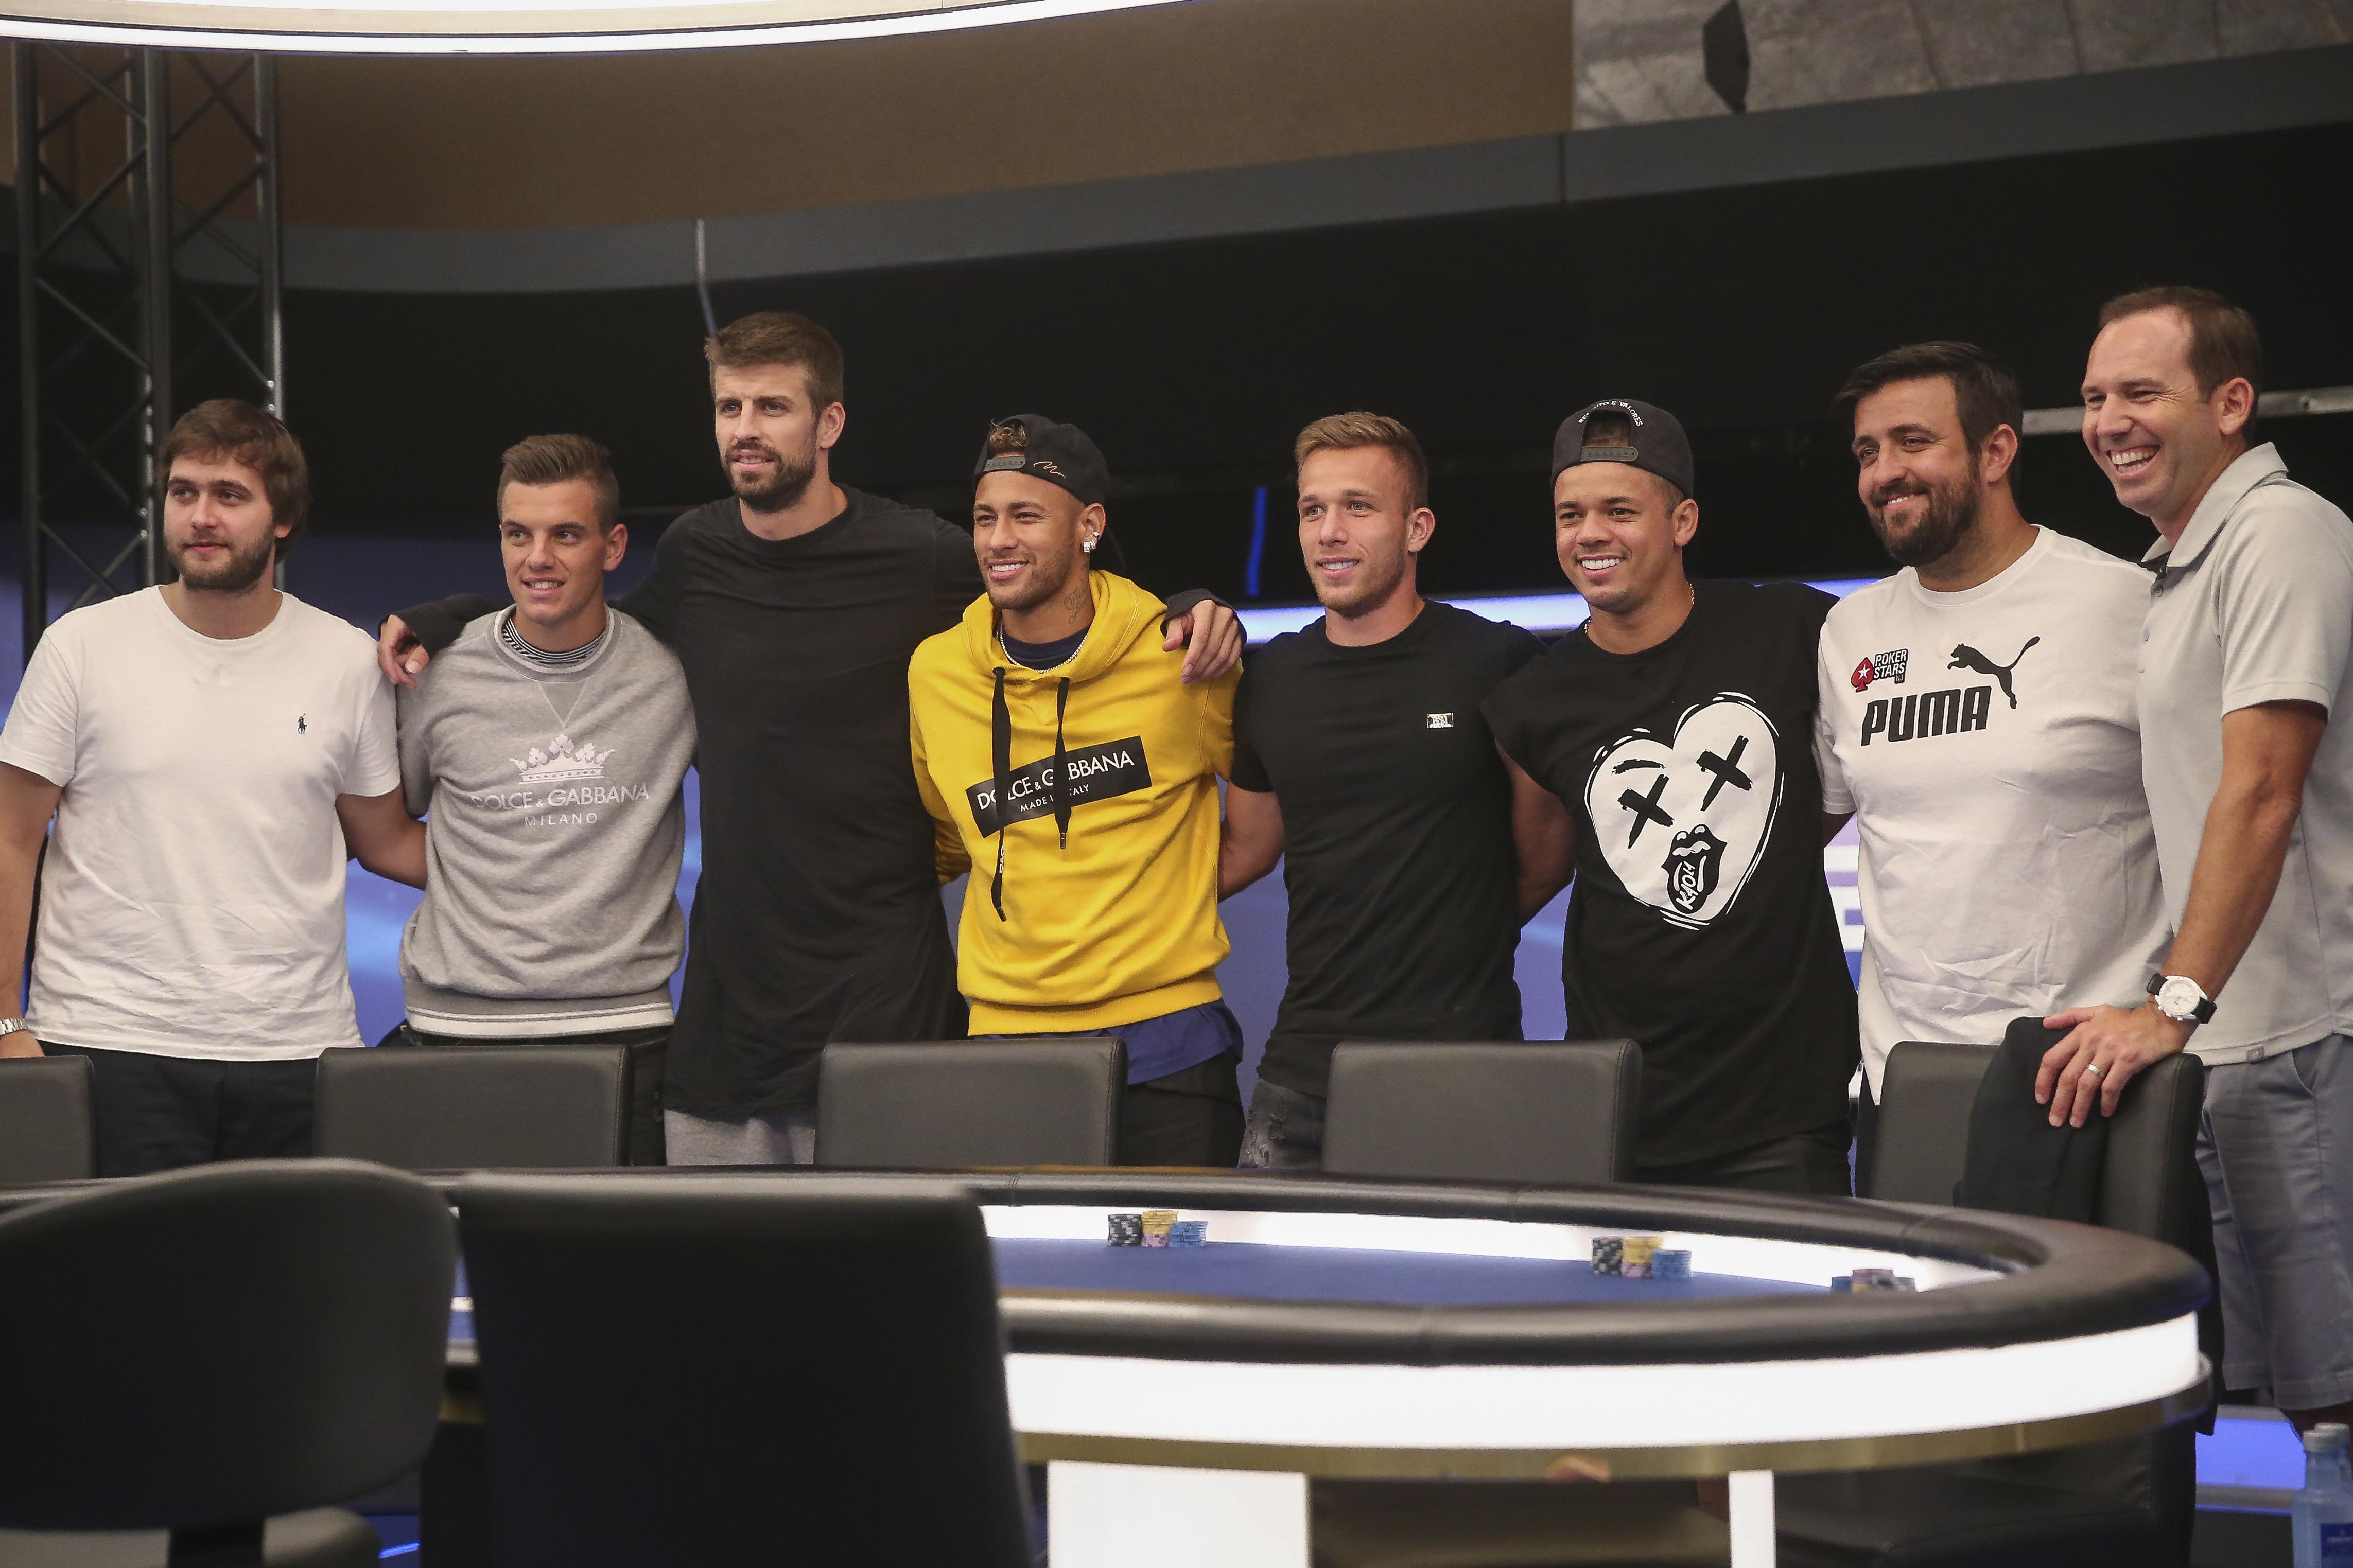 Garcia took part in a celebrity charity poker tournament to help raise funds for his foundation